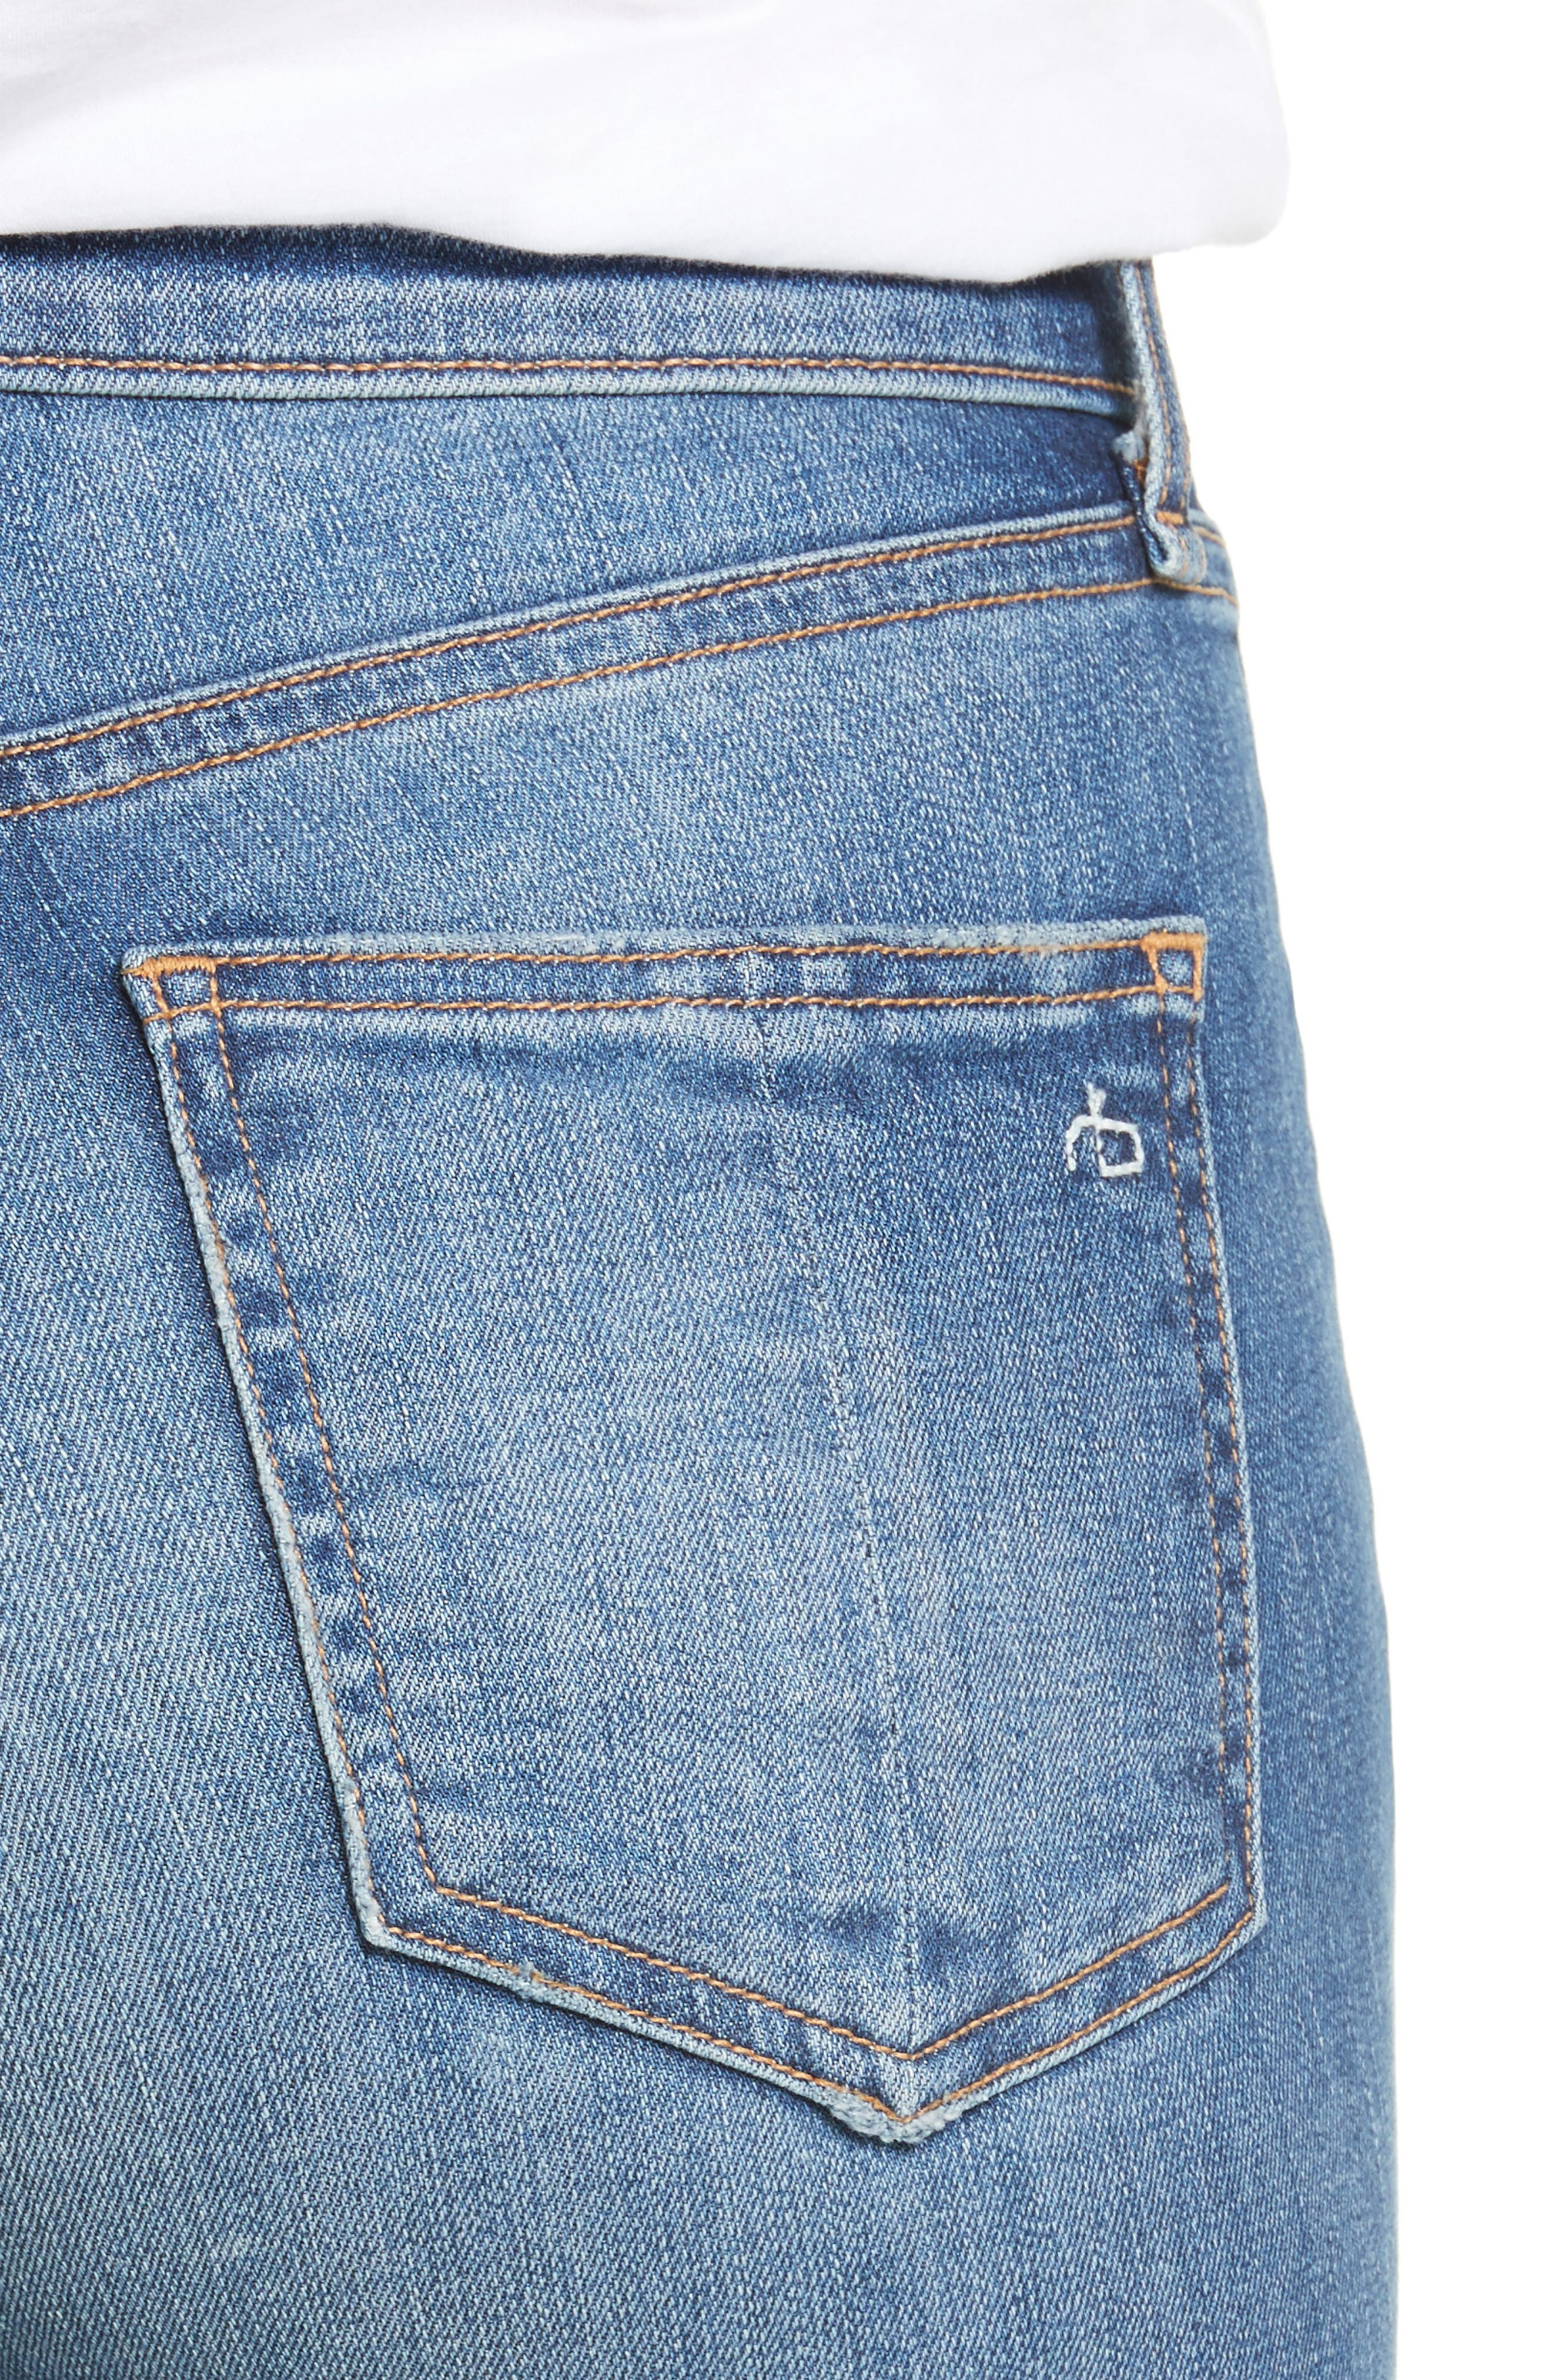 Ripped High Waist Skinny Jeans,                             Alternate thumbnail 4, color,                             Bonnie